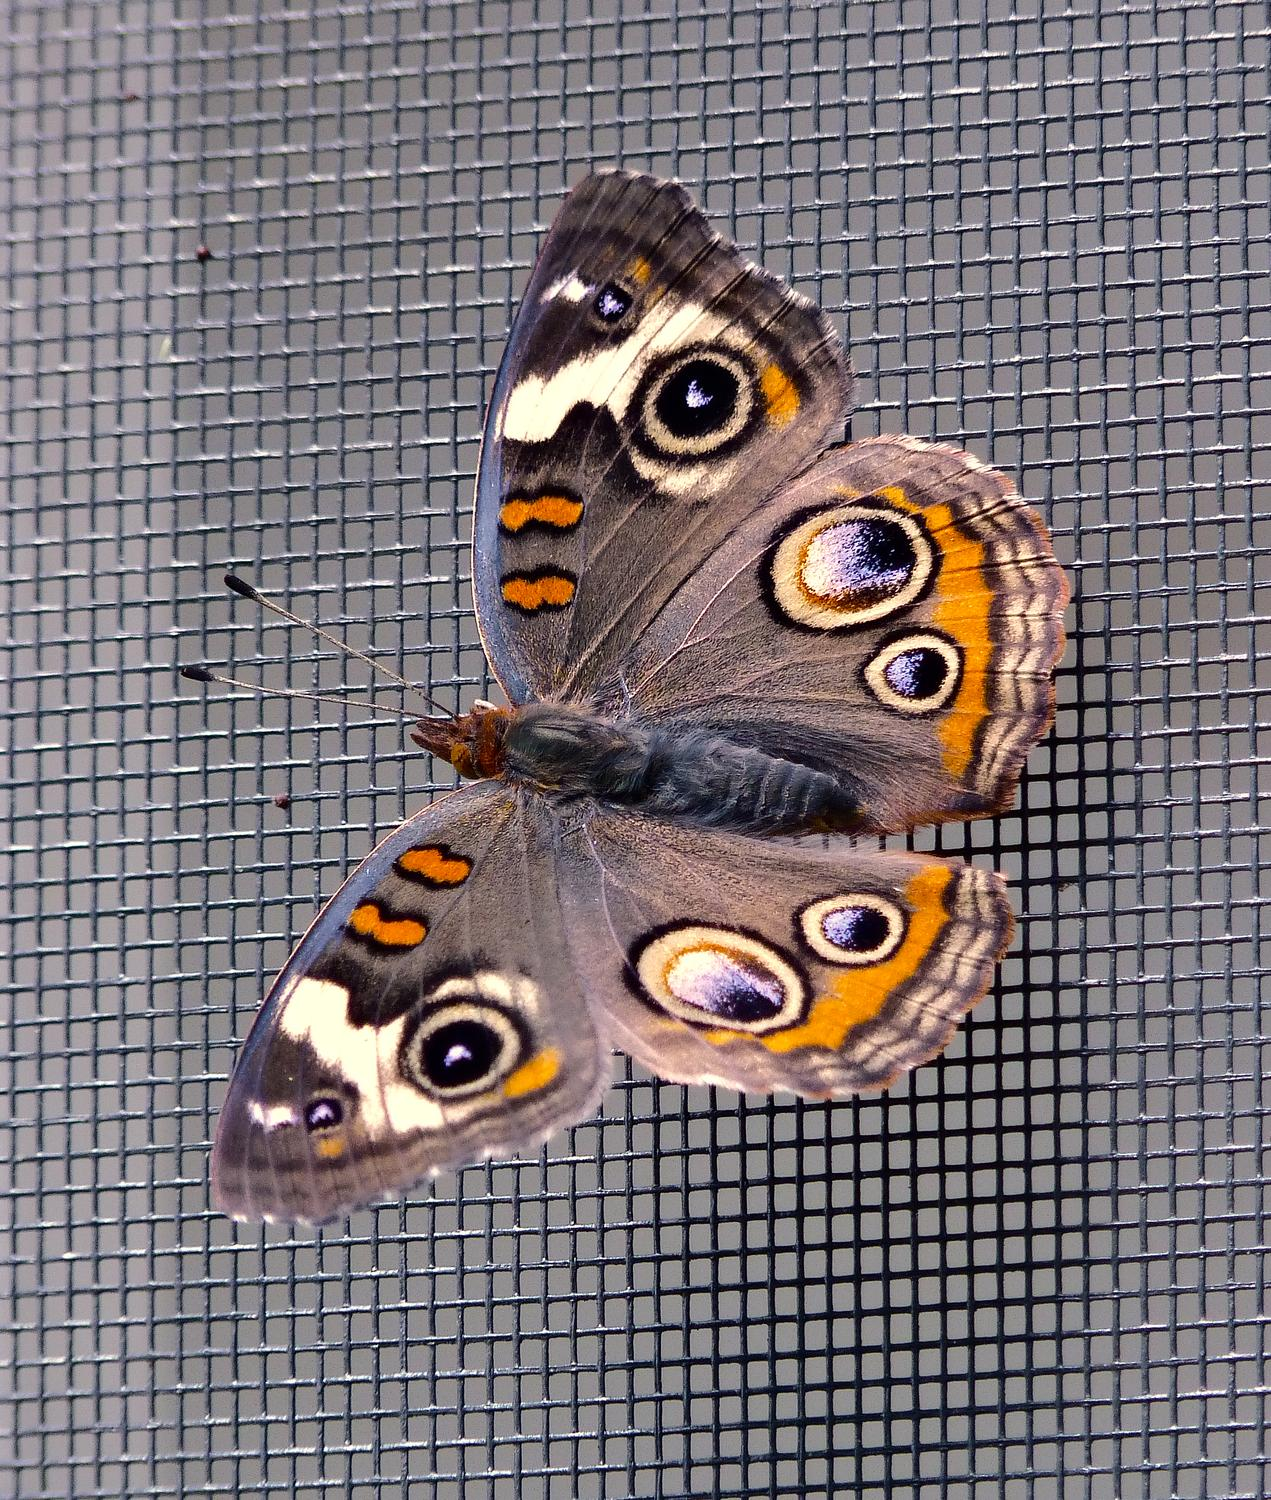 - And here's Bucky, ready for his close-up. My what big eyes you have. - Common Buckeye butterfly - Panasonic DMC-FZ35- - Tony Karp, design, art, photography, techno-impressionist, techno-impressionism, aerial photography , drone , drones , dji , mavic pro , video , 3D printing - Books -